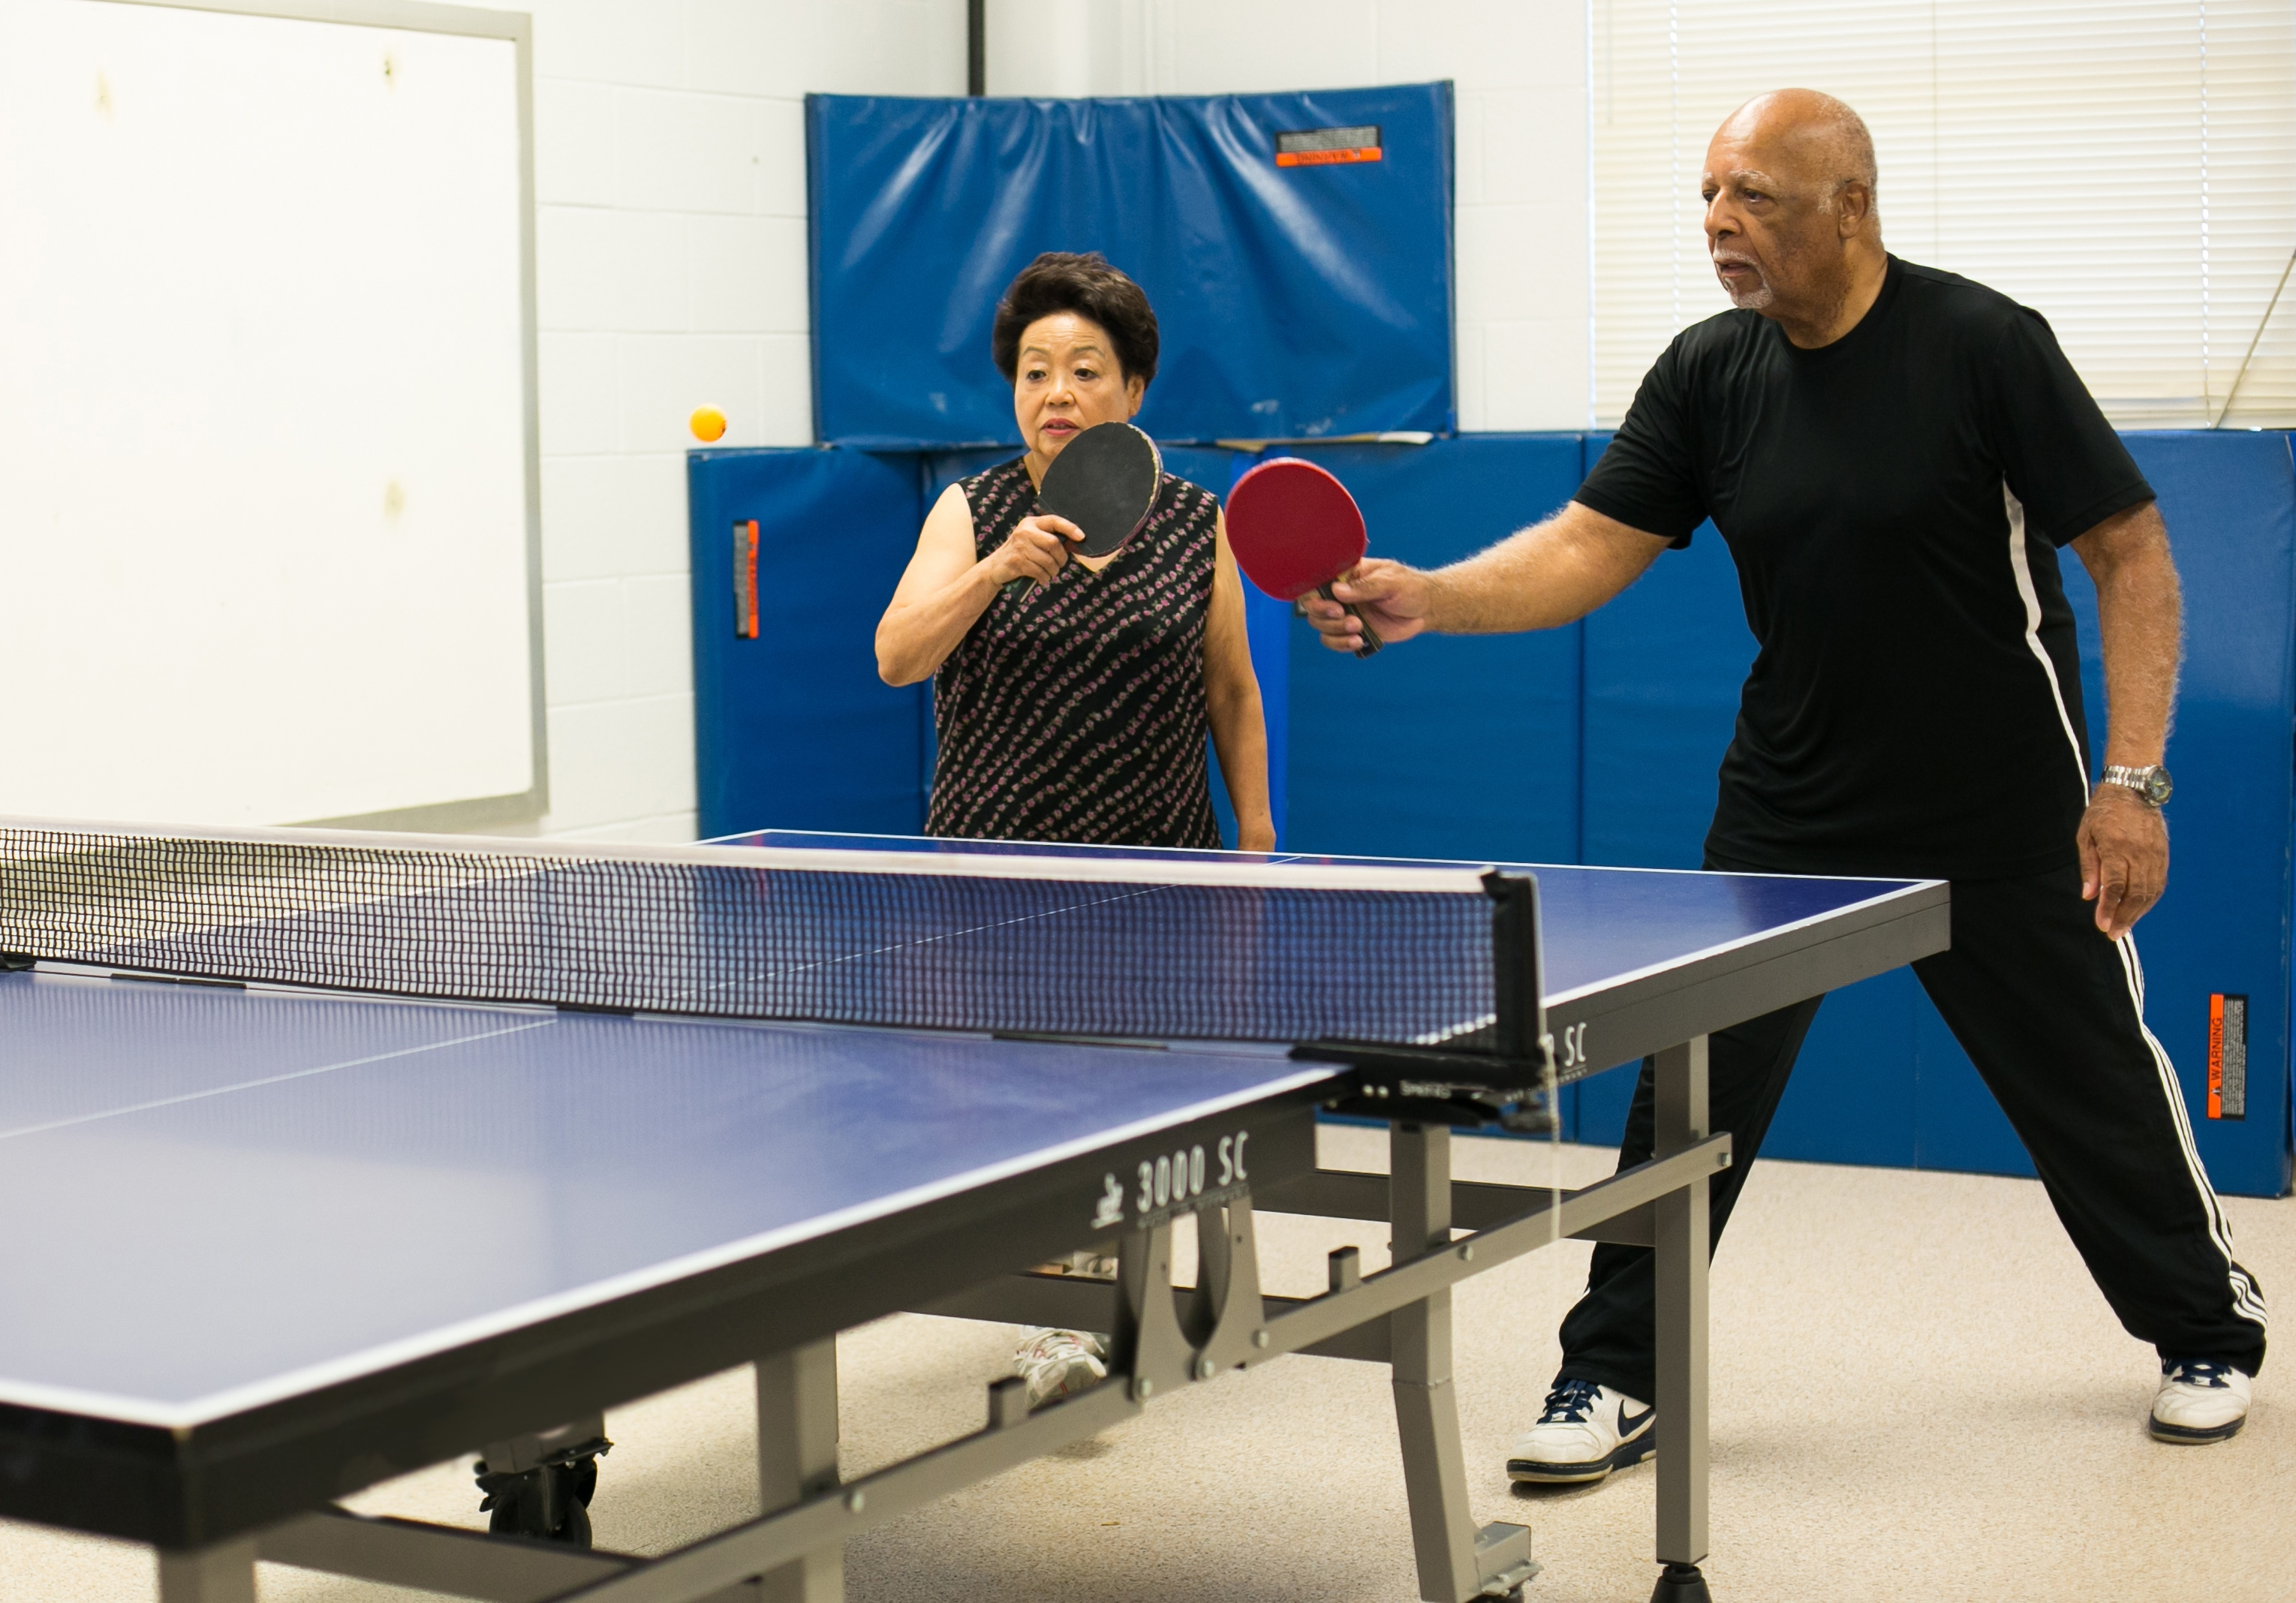 Two people playing Ping Pong